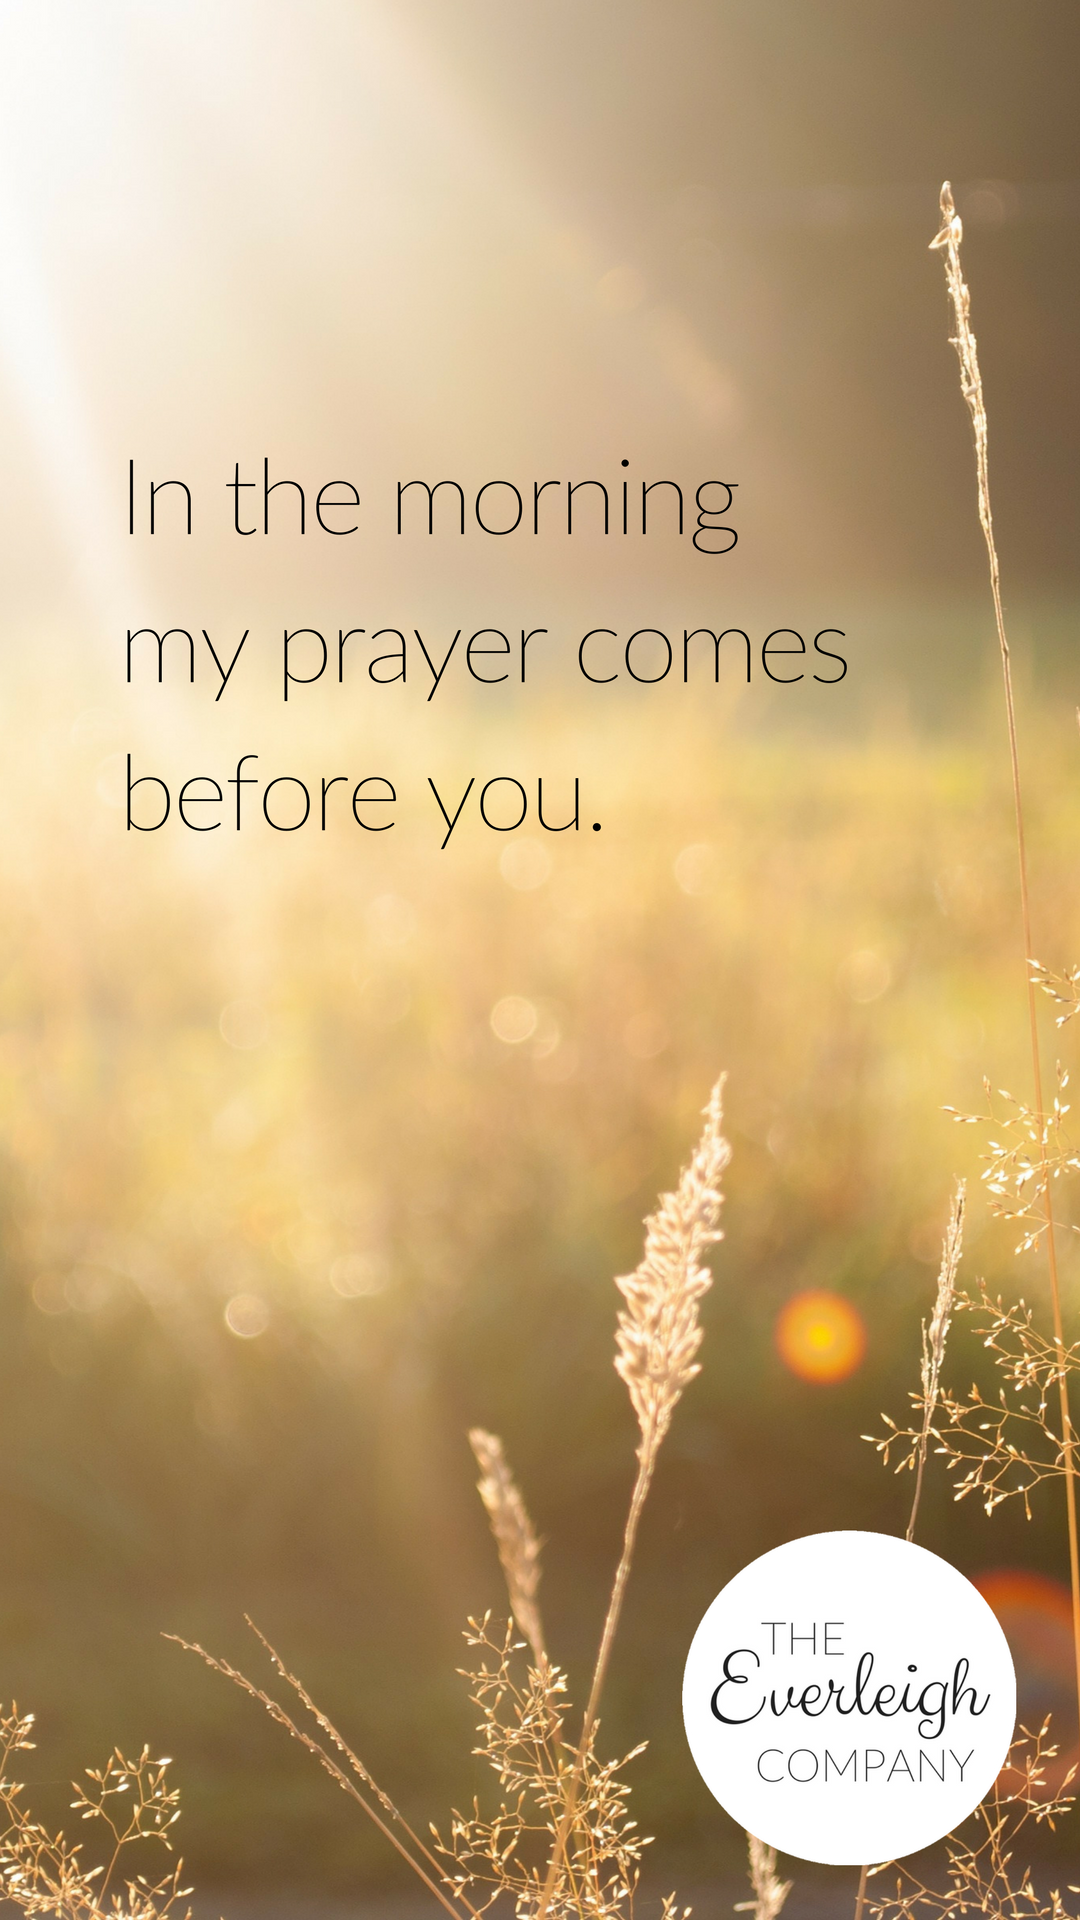 Everleigh Company iPhone Wallpaper Prayer Comes Before You